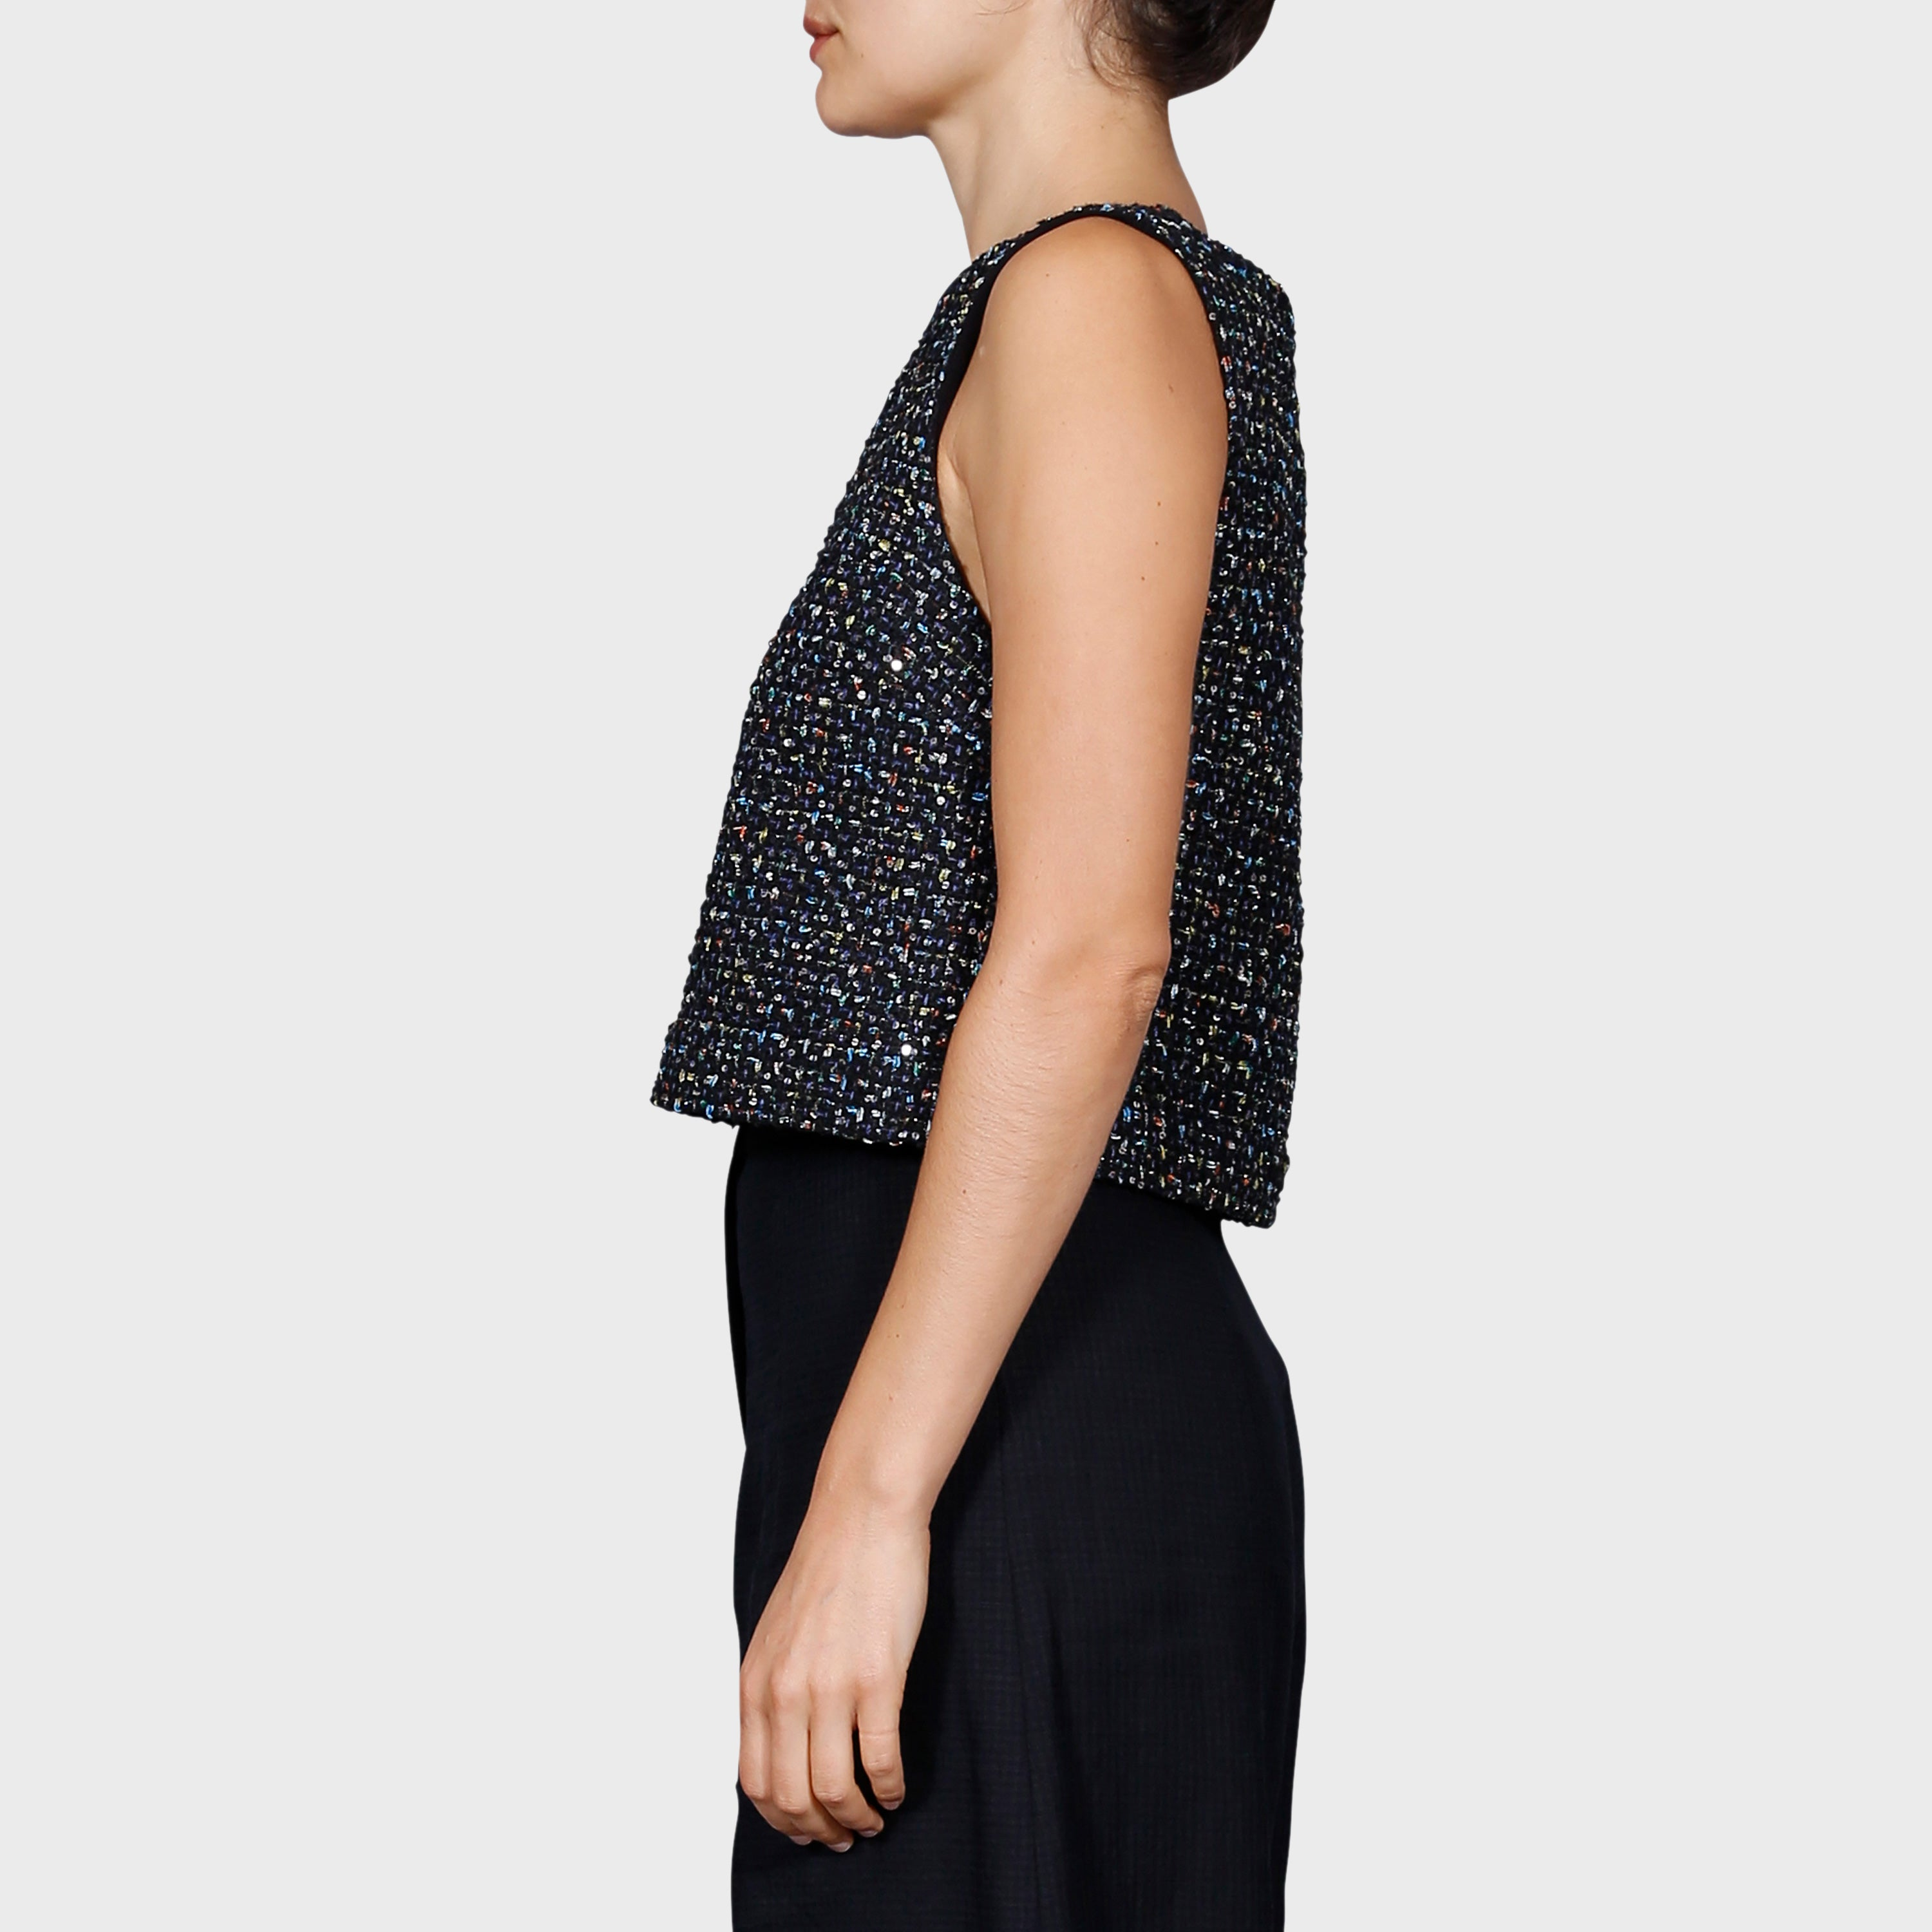 SAM TOP / BLACK-MULTI